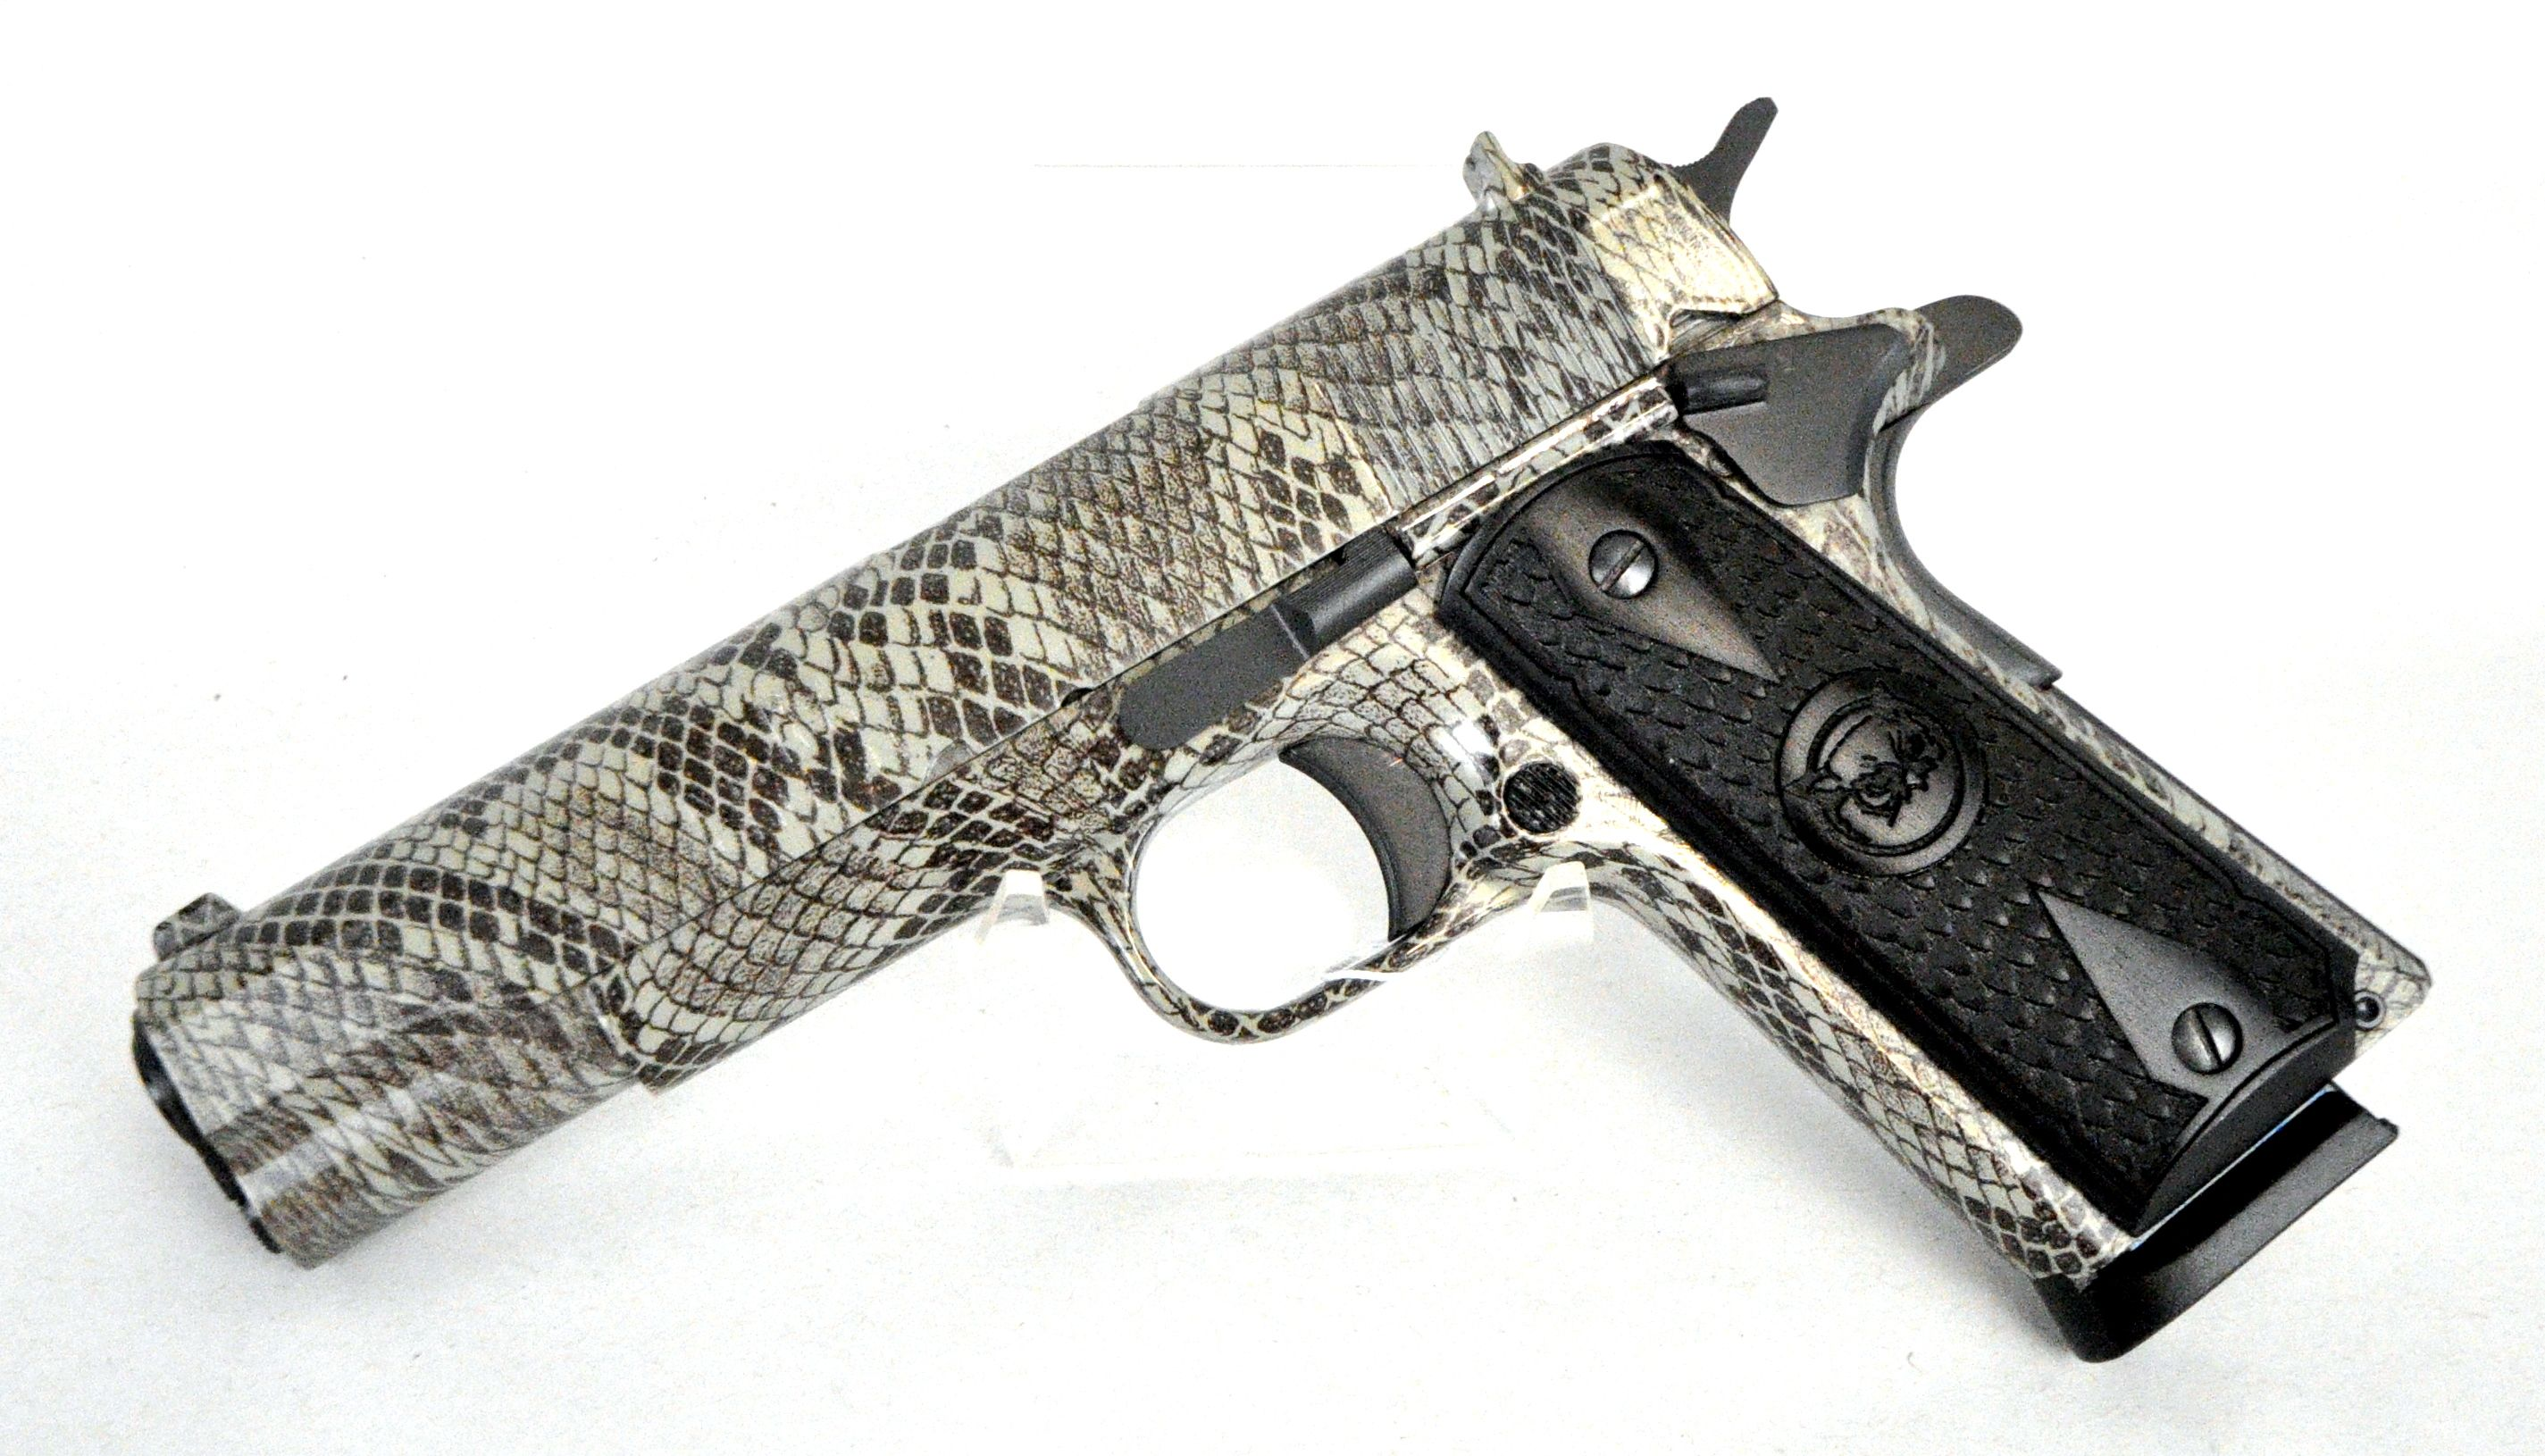 Iver Johnson 1911A1 Copperhead .45 ACP. A GI-style, Government-sized ...